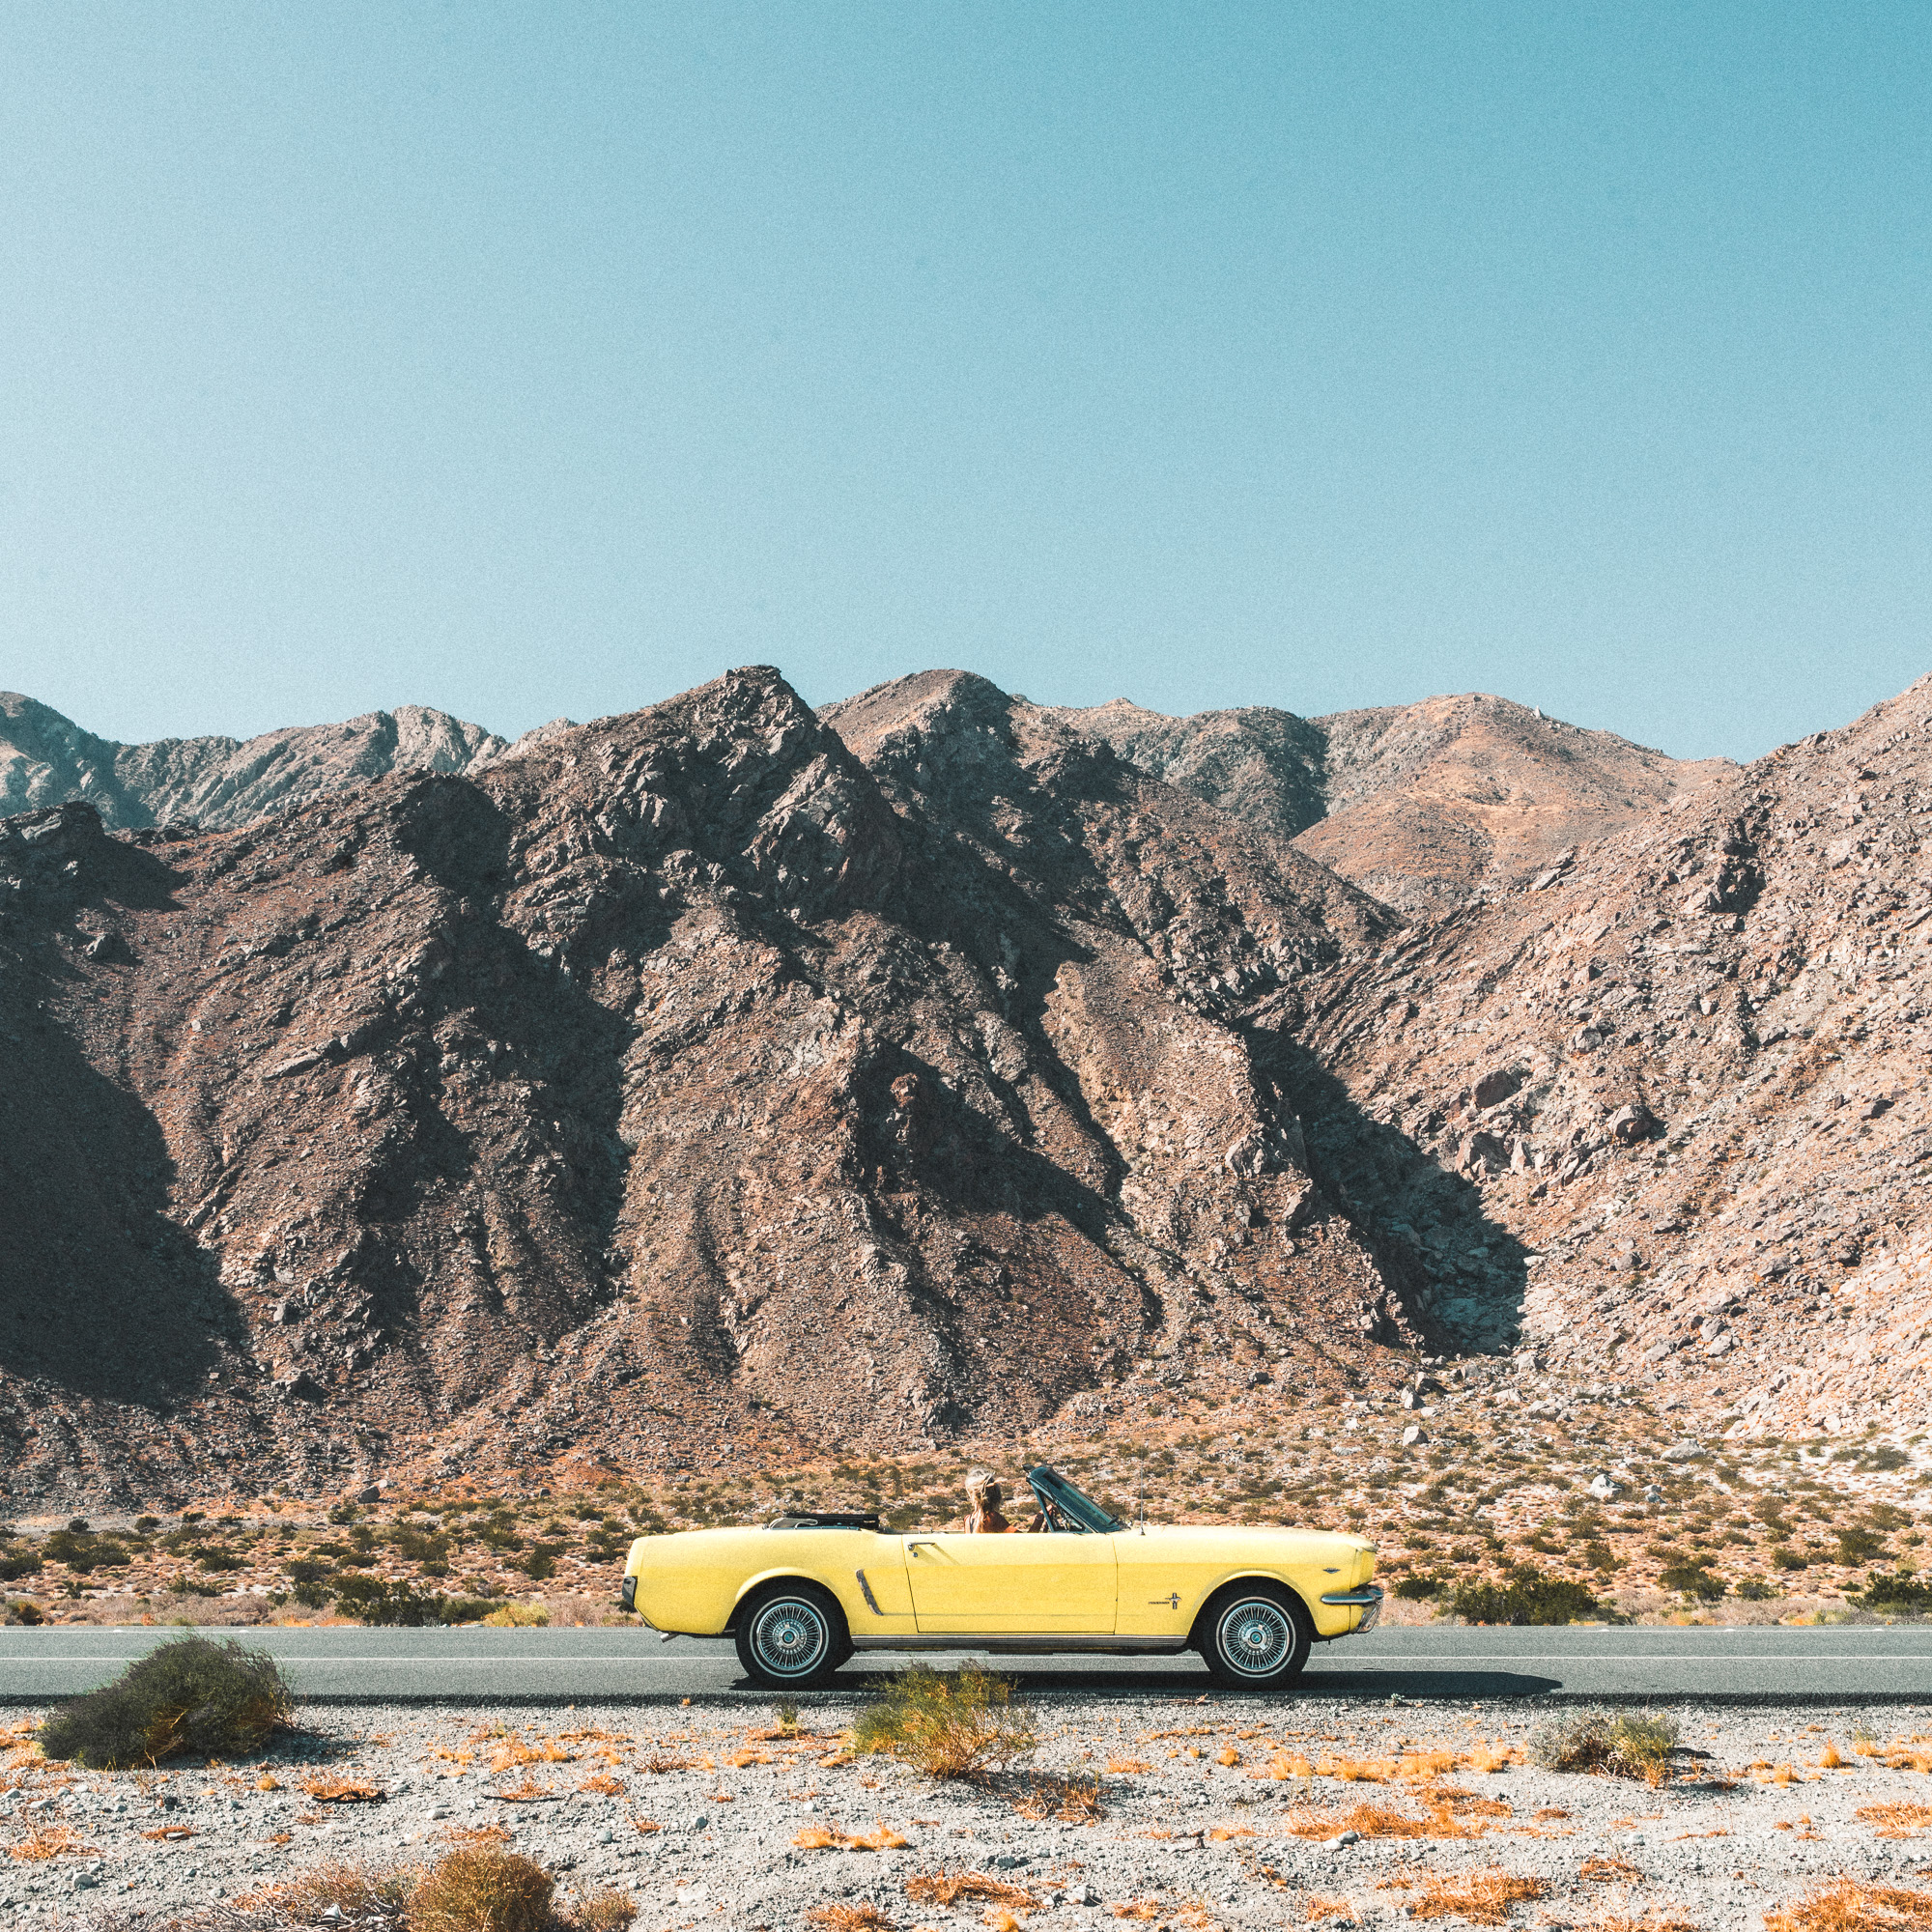 vintage yellow mustang road trip in the desert to palm springs